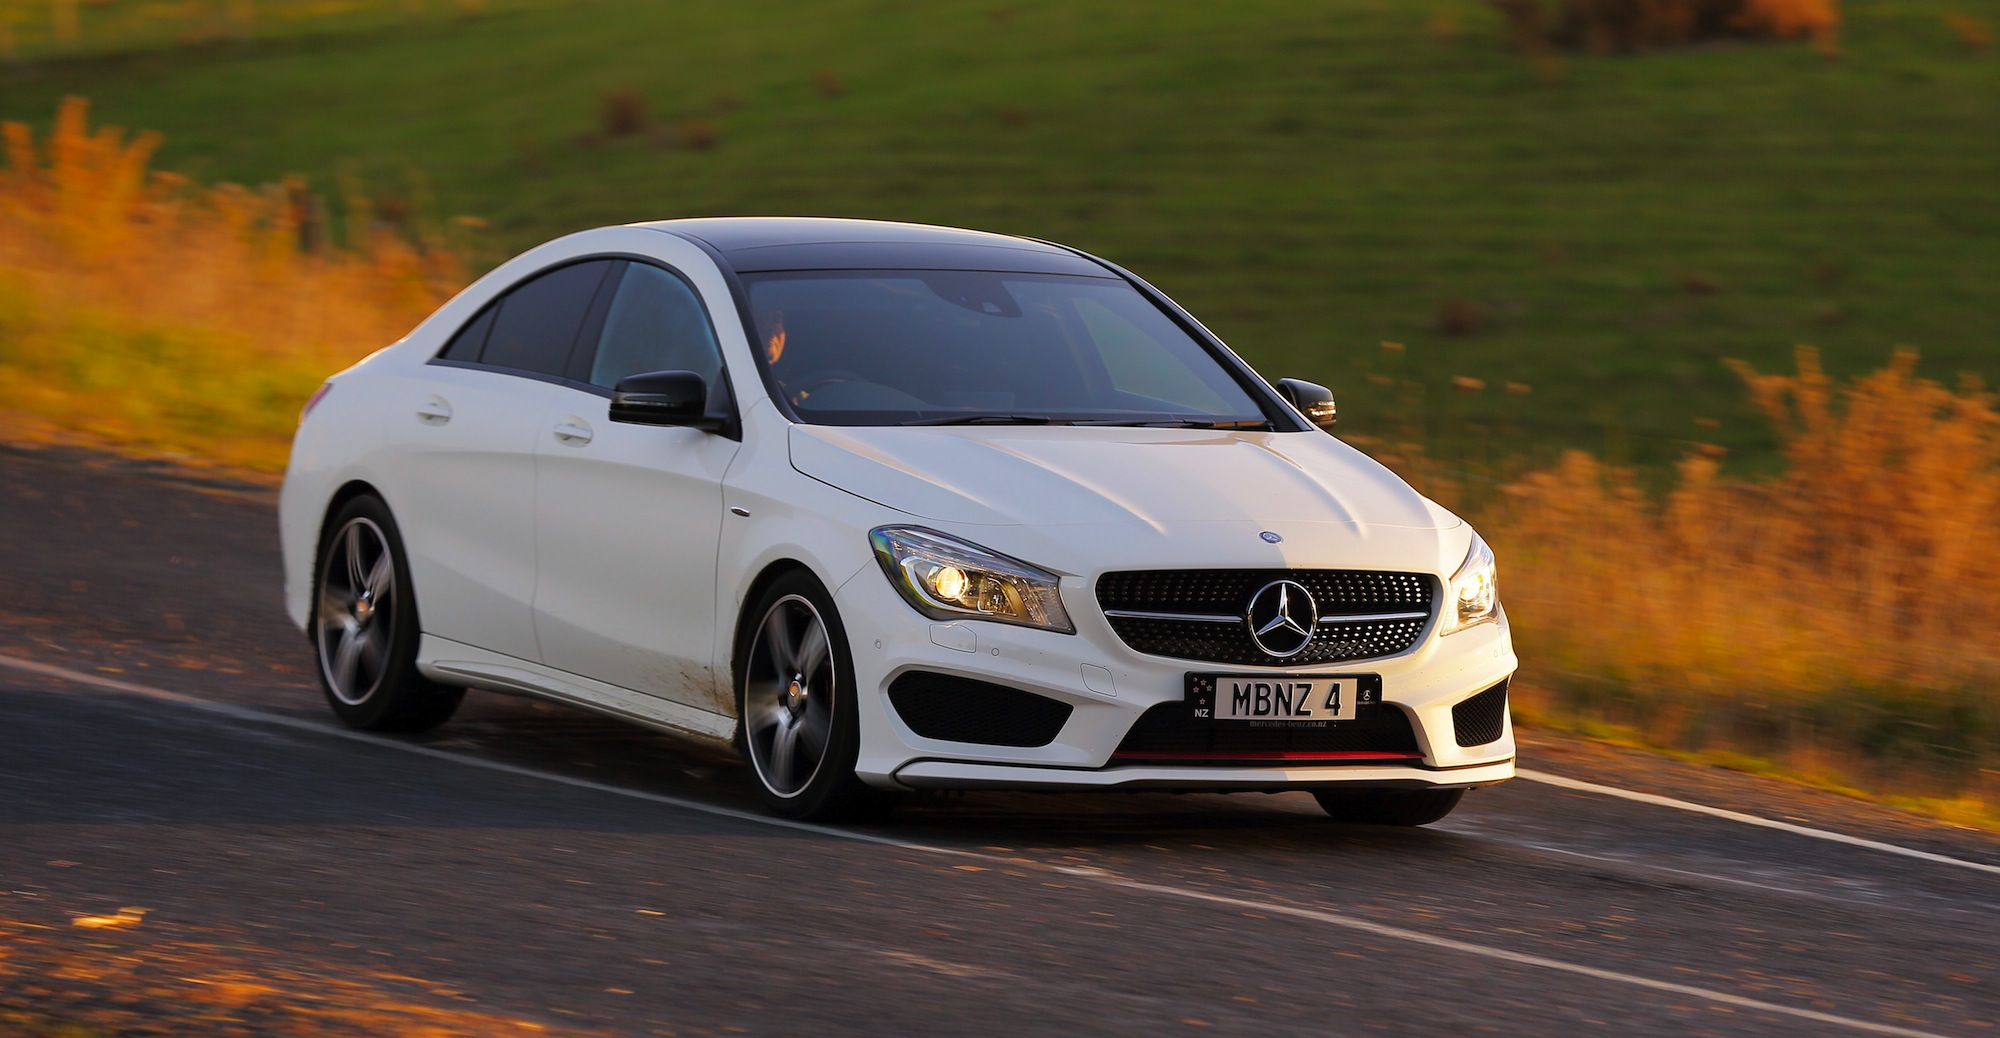 Mercedes benz cla class review cla250 sport 4matic for Mercedes benz in md